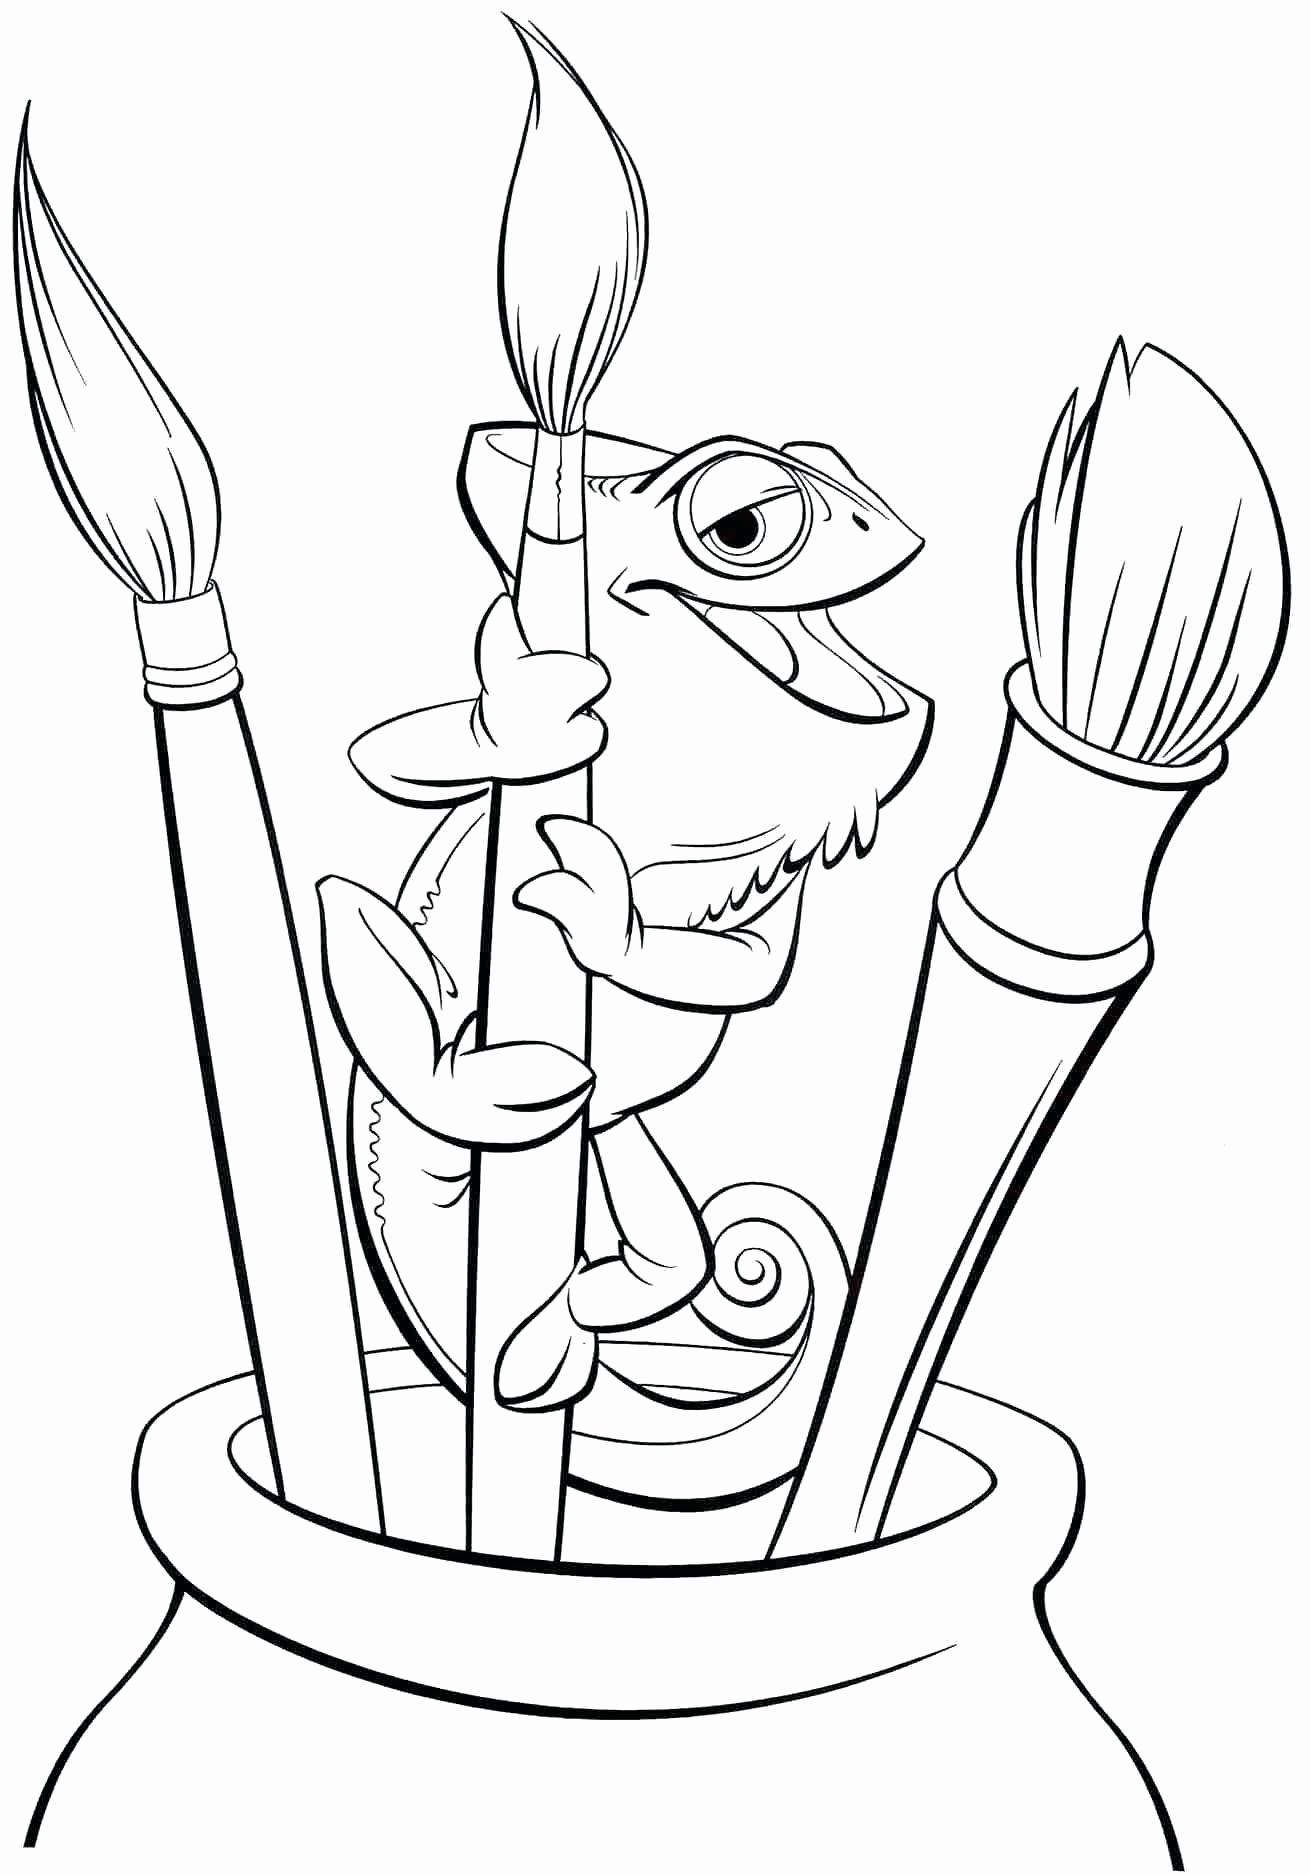 Disney Coloring Pages For Kids Pascal In 2020 Tangled Coloring Pages Disney Coloring Pages Rapunzel Coloring Pages